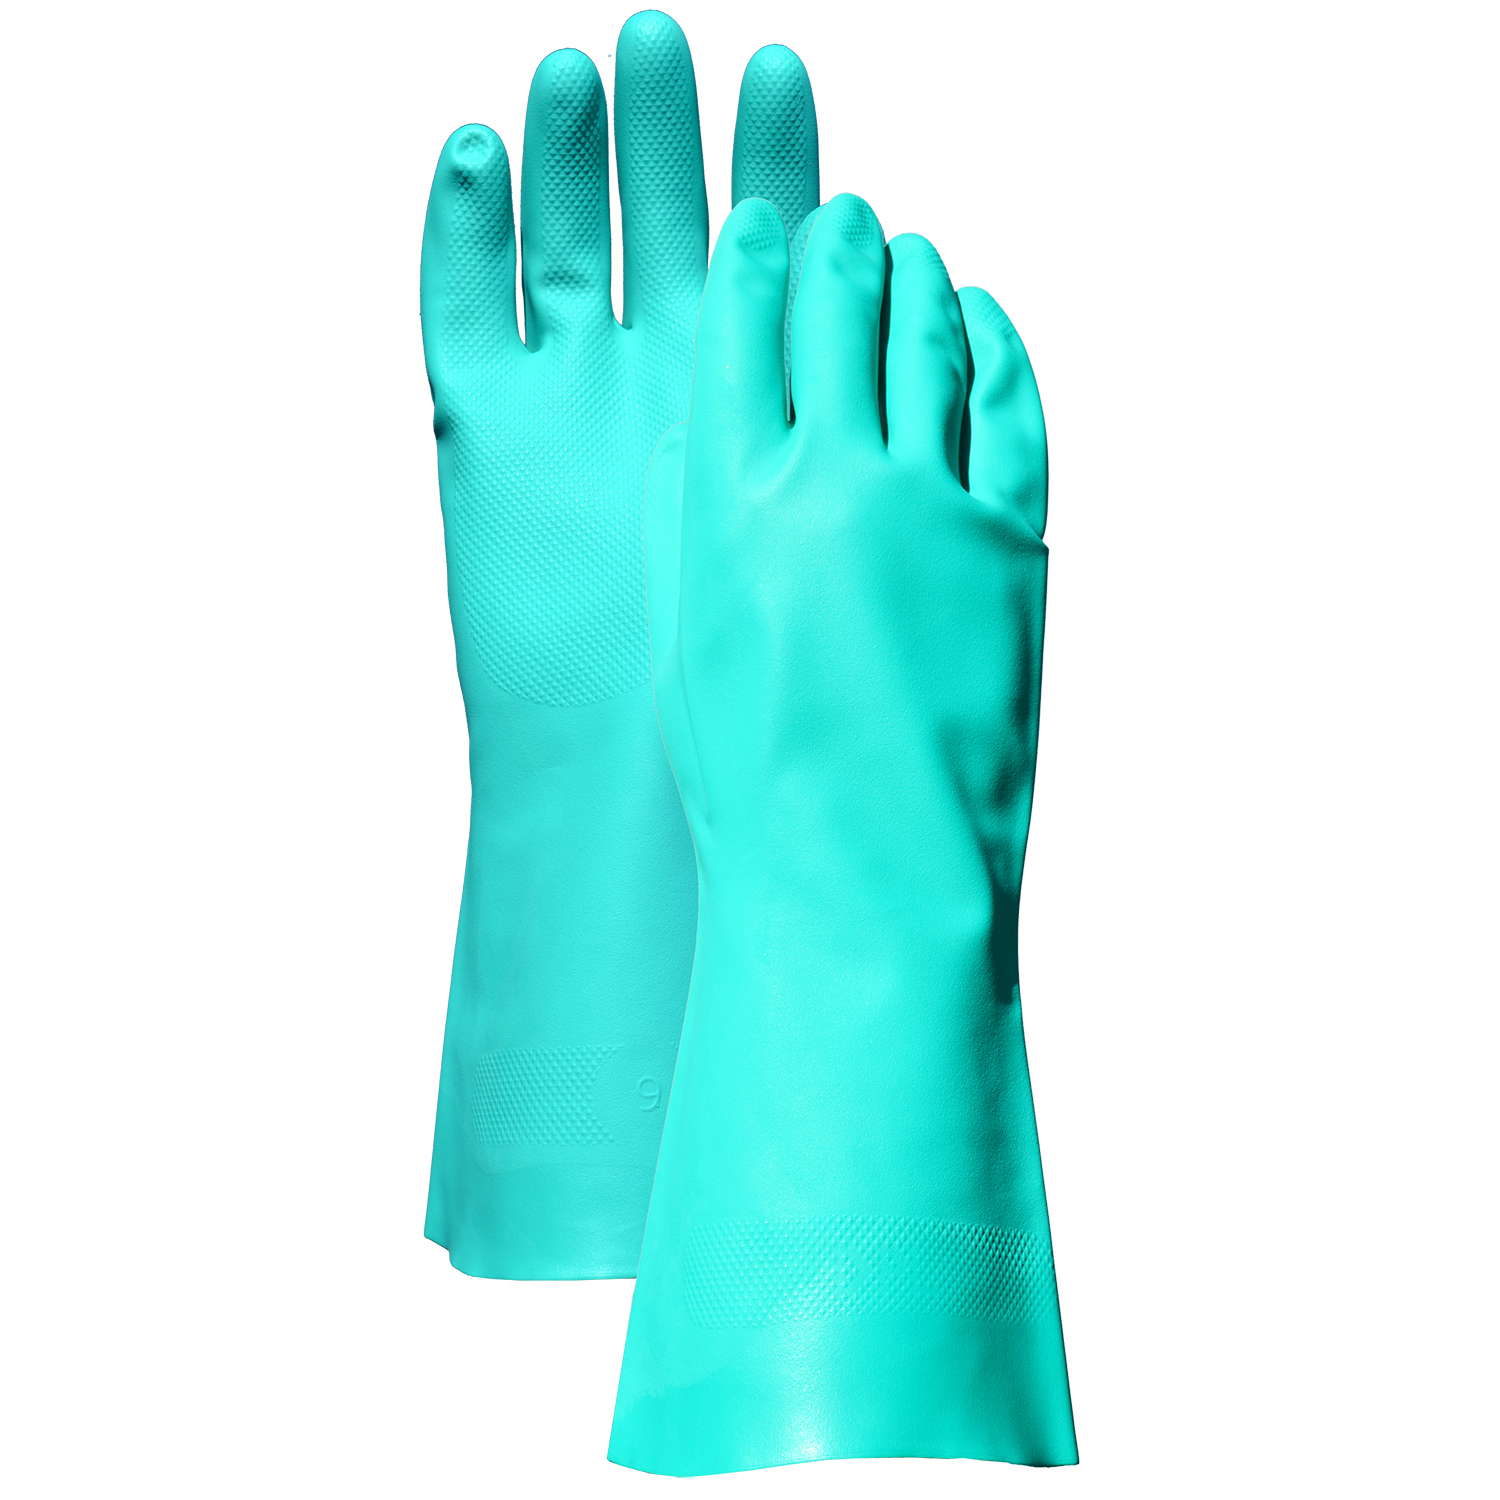 Bellingham Nitrile Spray Gloves